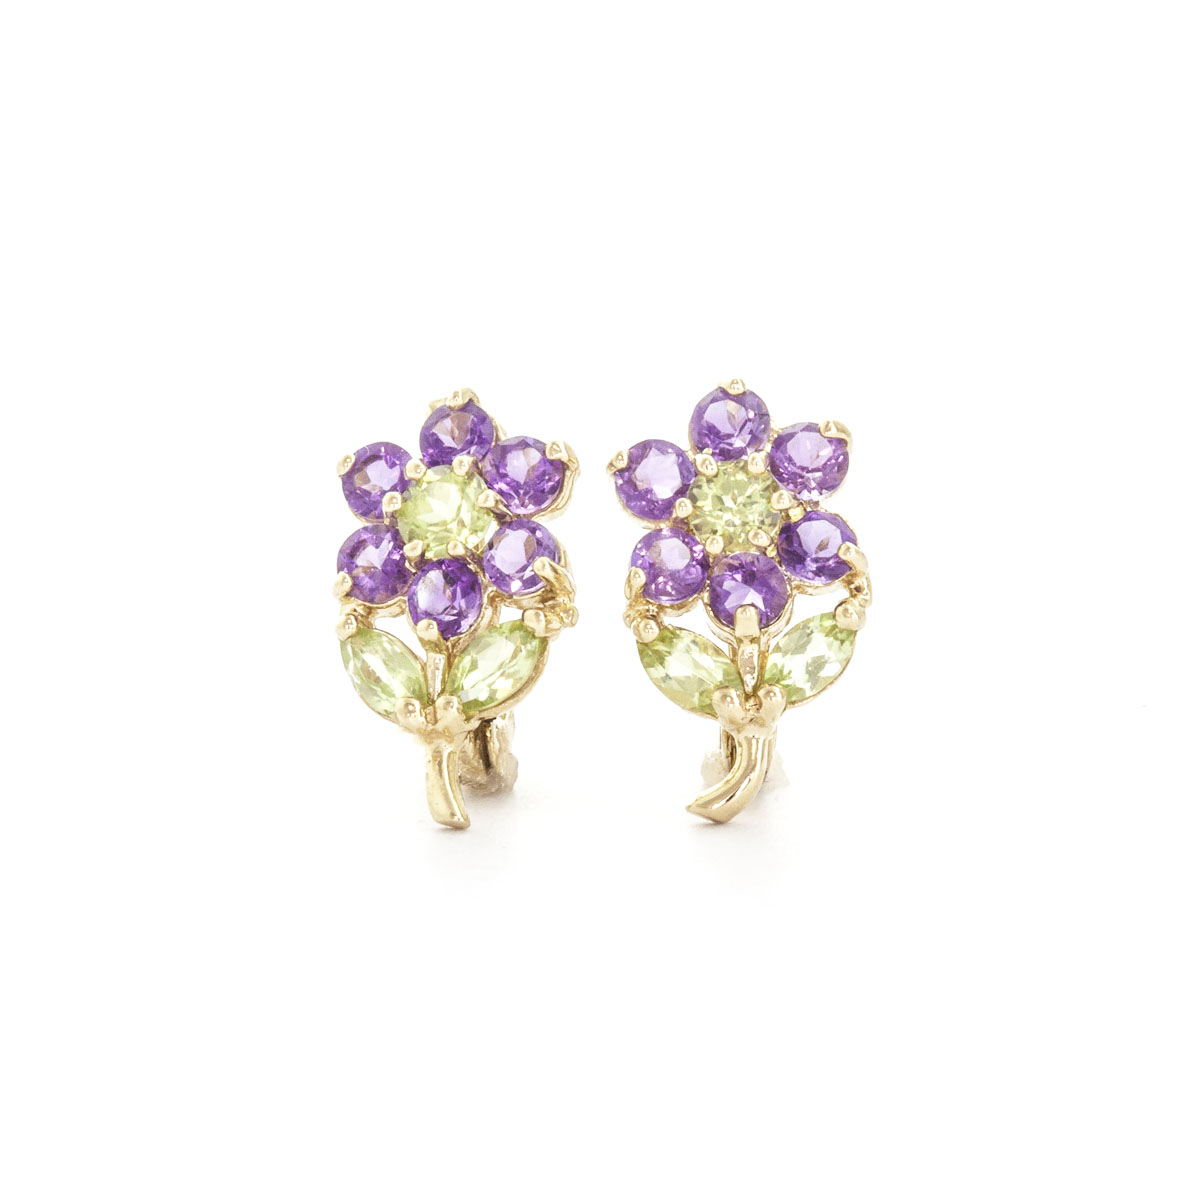 Amethyst & Peridot Flower Petal Stud Earrings in 9ct Gold